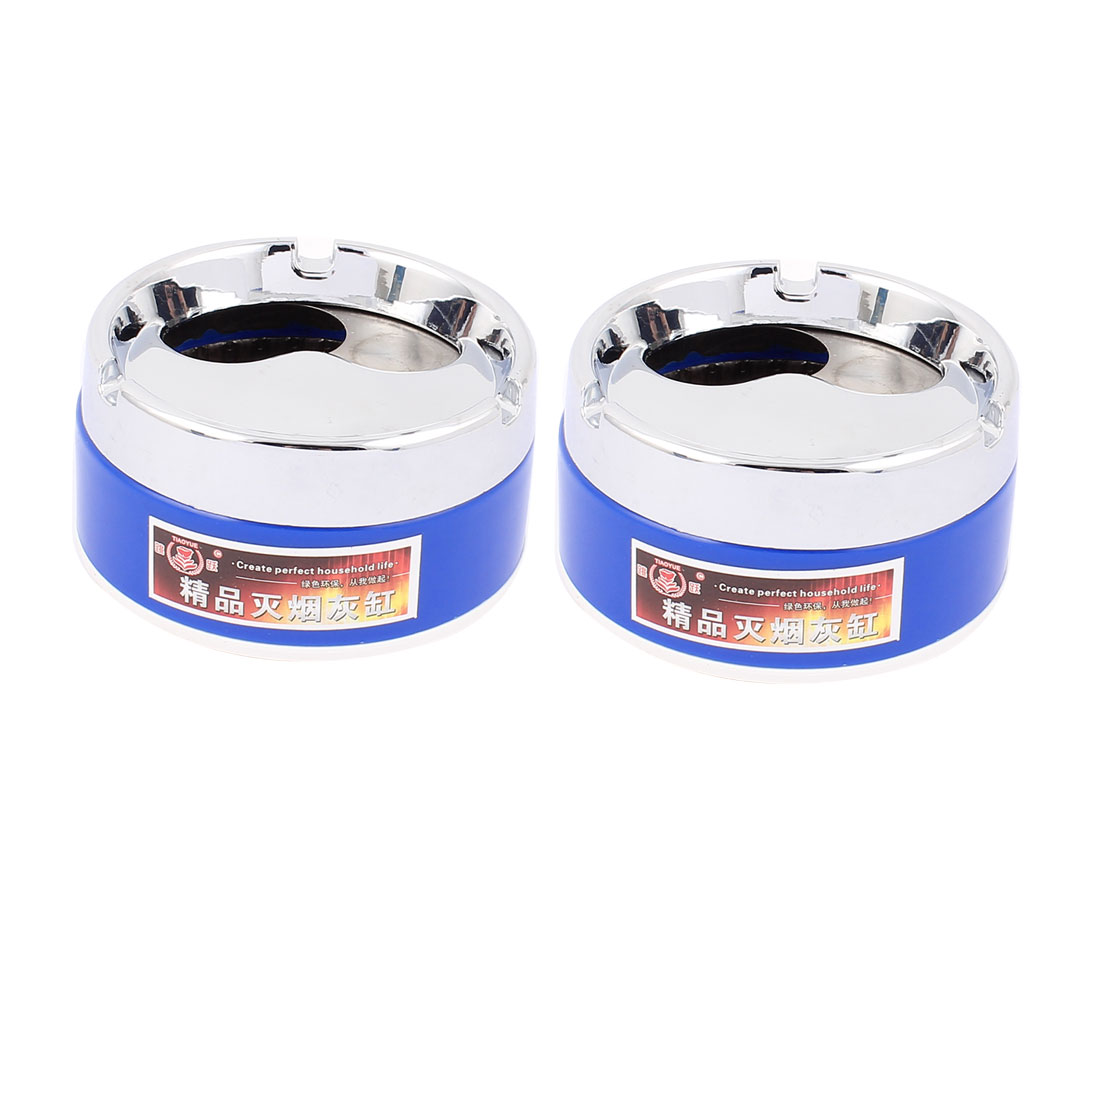 Cylinder Shape Tobacco Cigarette Ashtray Holder Case Container 2pcs